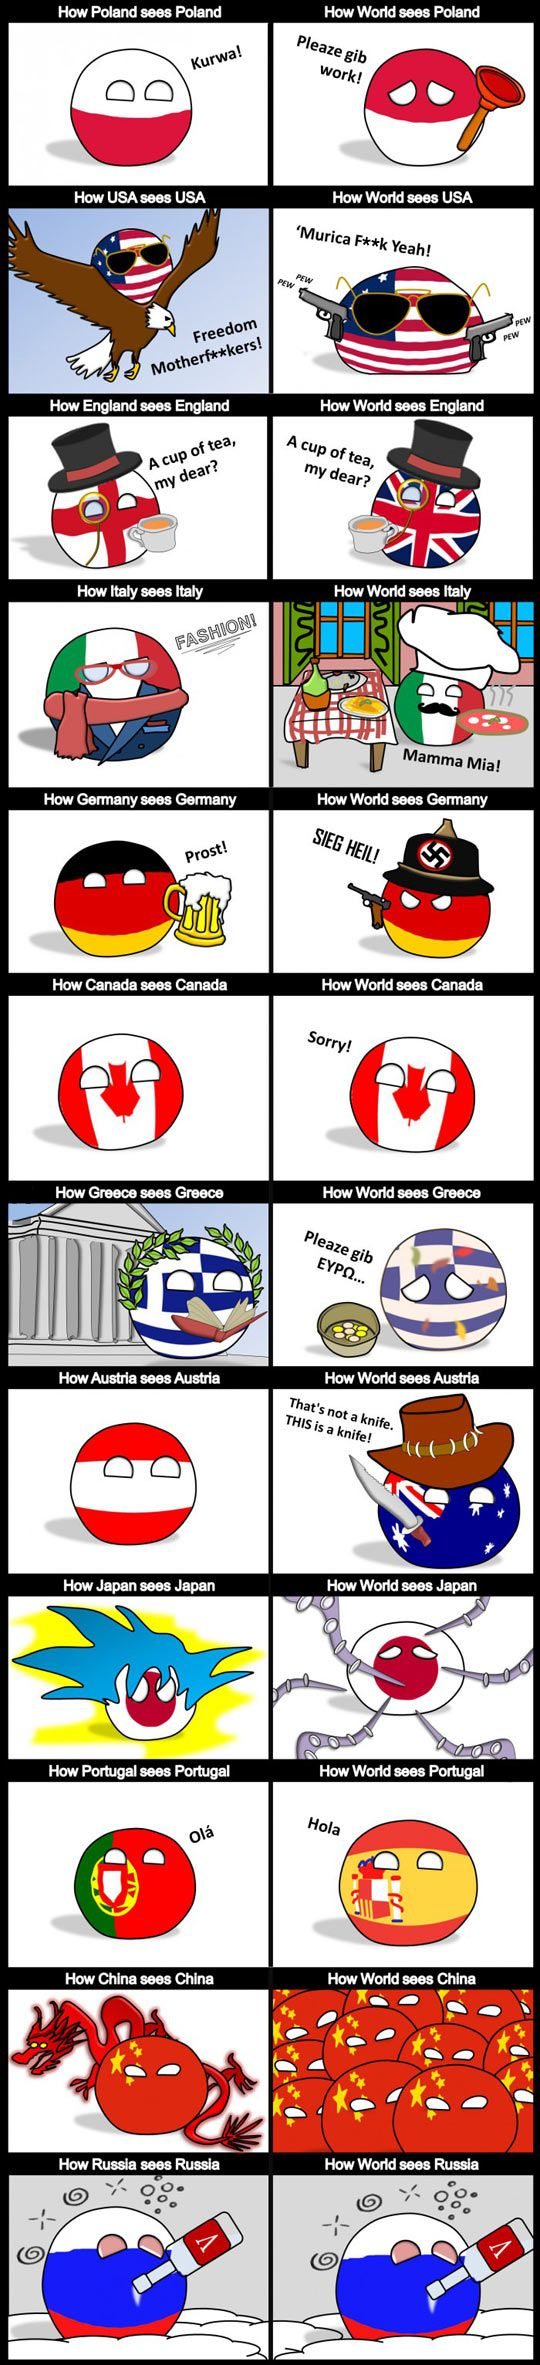 How World Sees Countries